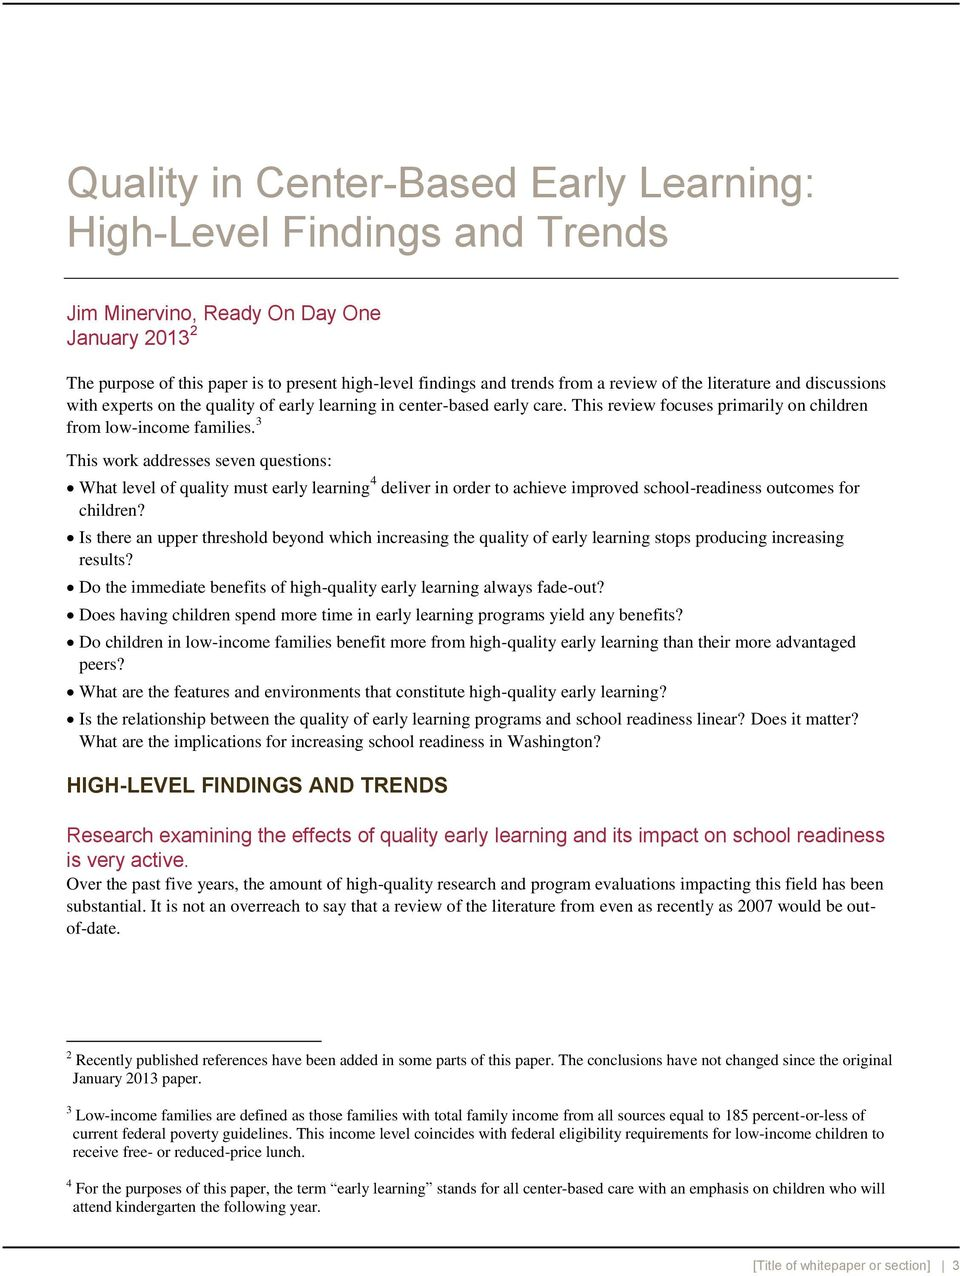 3 This work addresses seven questions: What level of quality must early learning 4 deliver in order to achieve improved school-readiness outcomes for children?